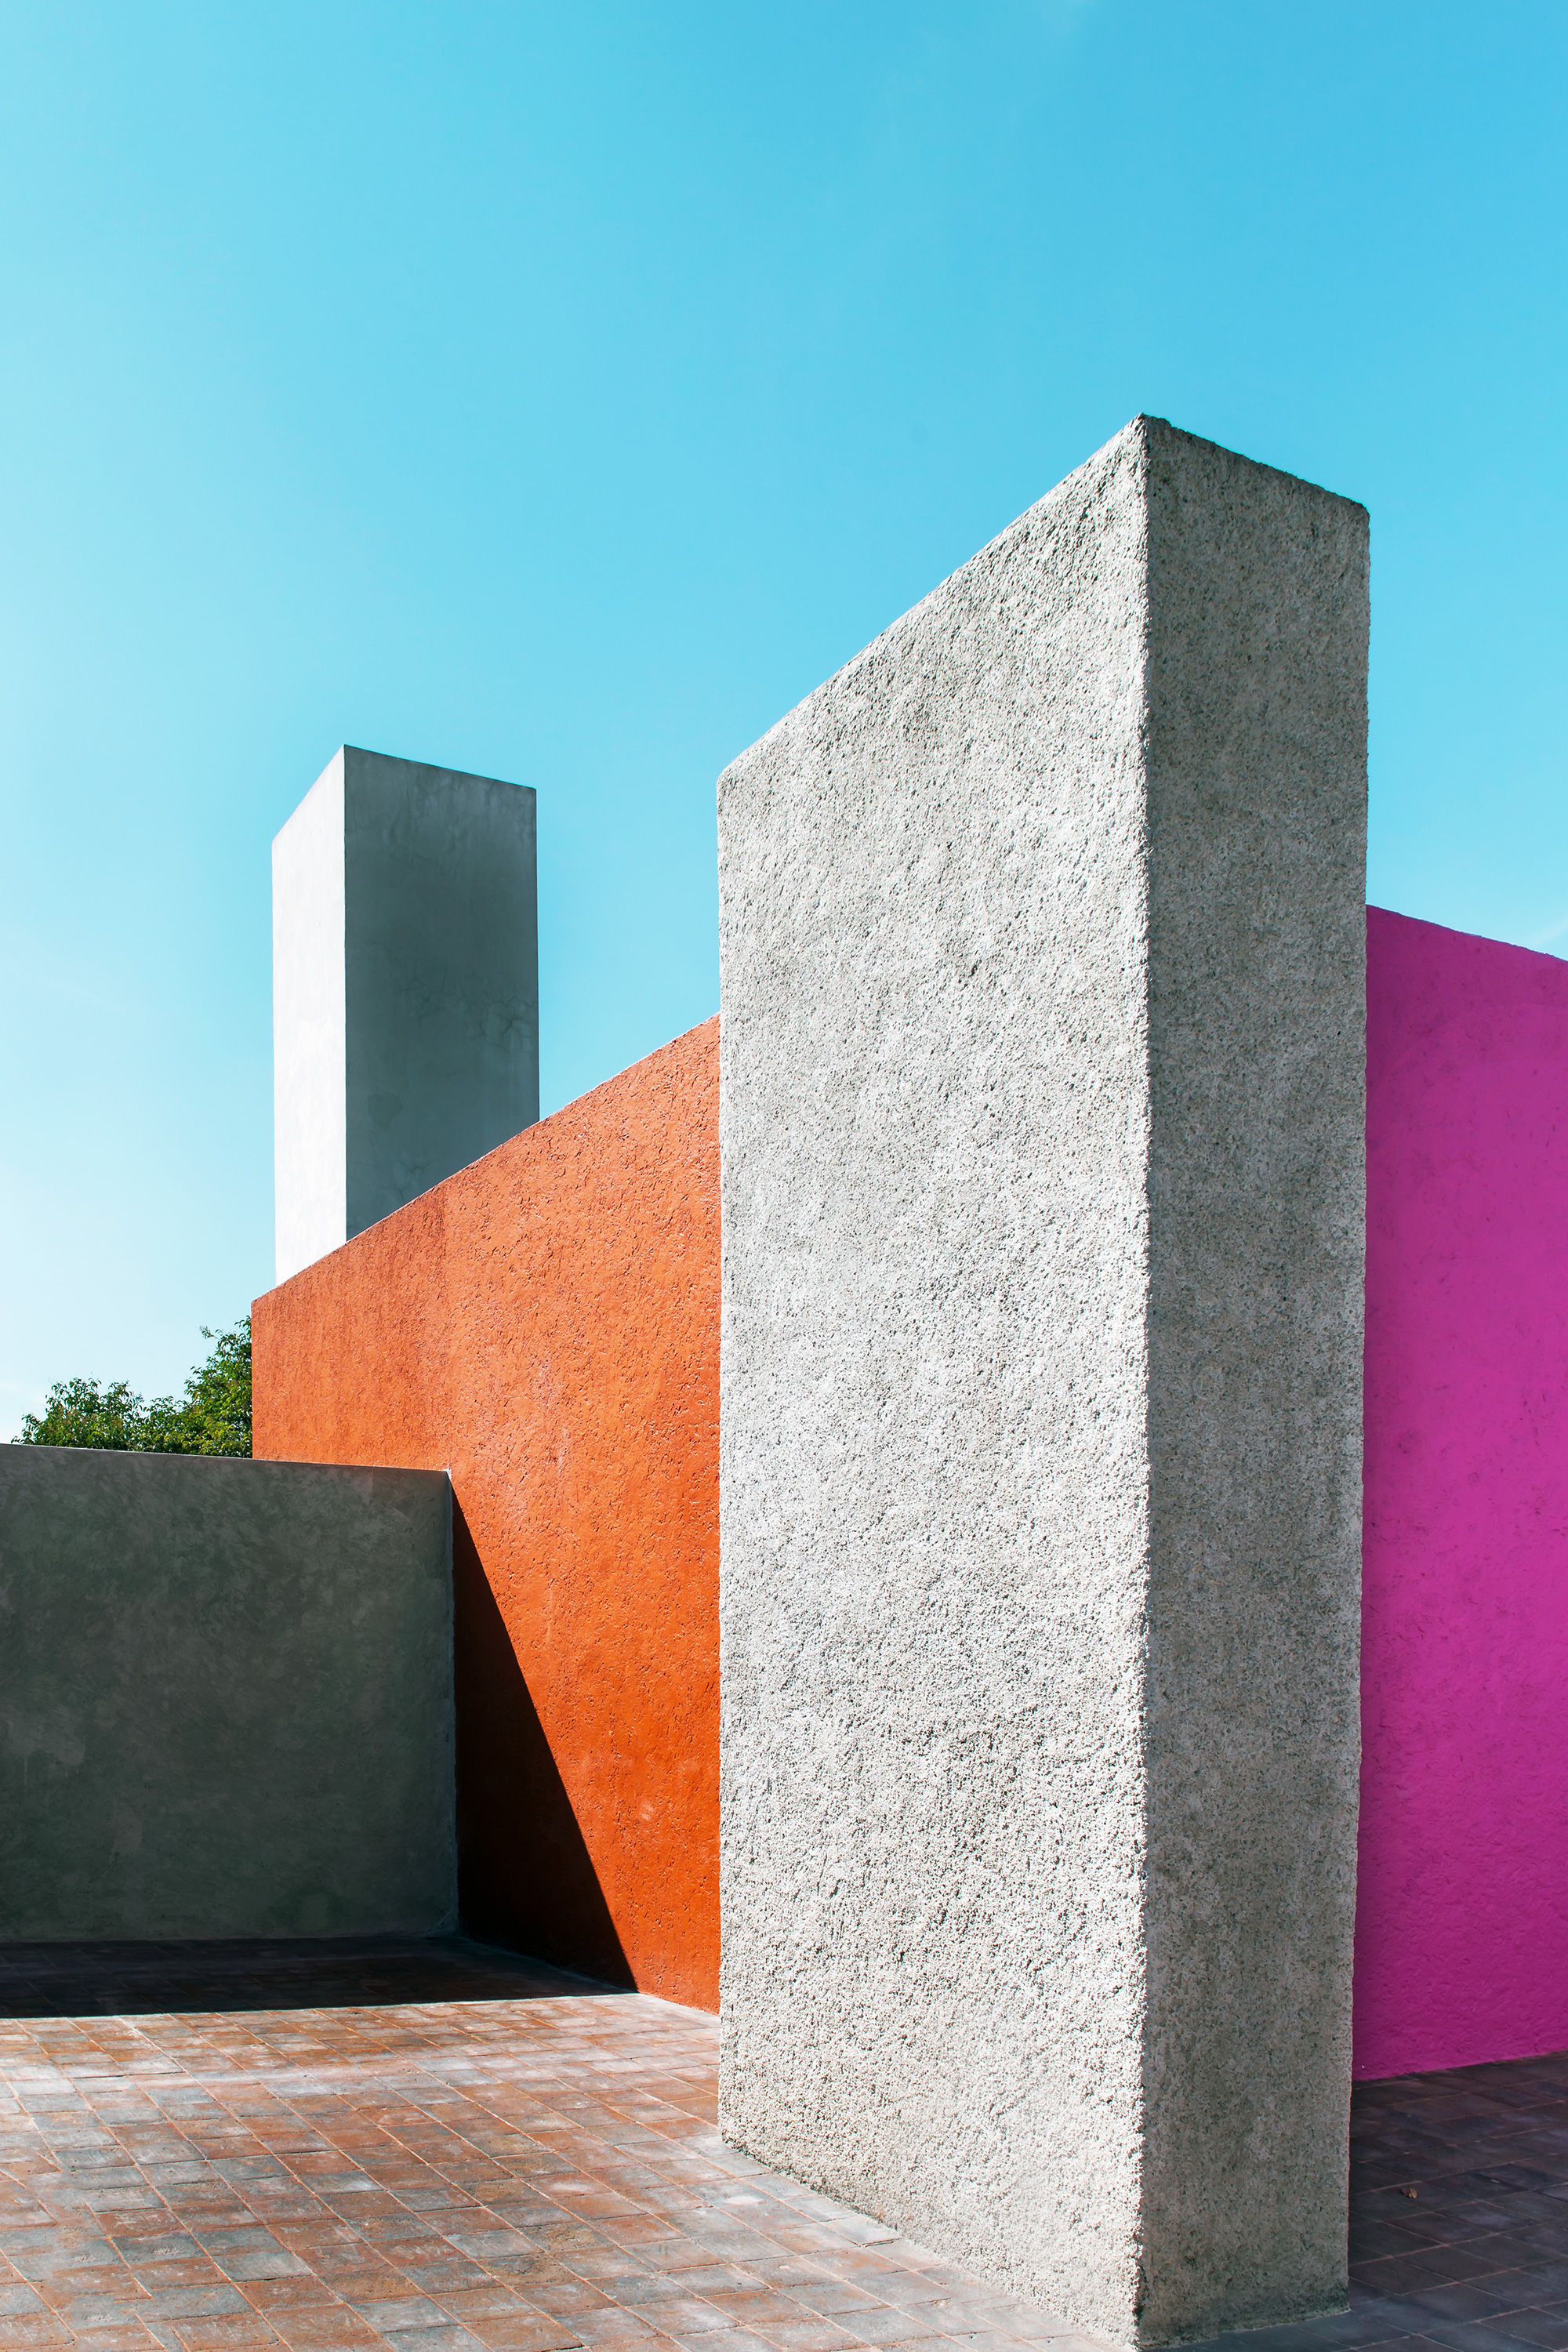 The Mexico City Guide for Art, Food, and Design Lovers / Artful Desperado